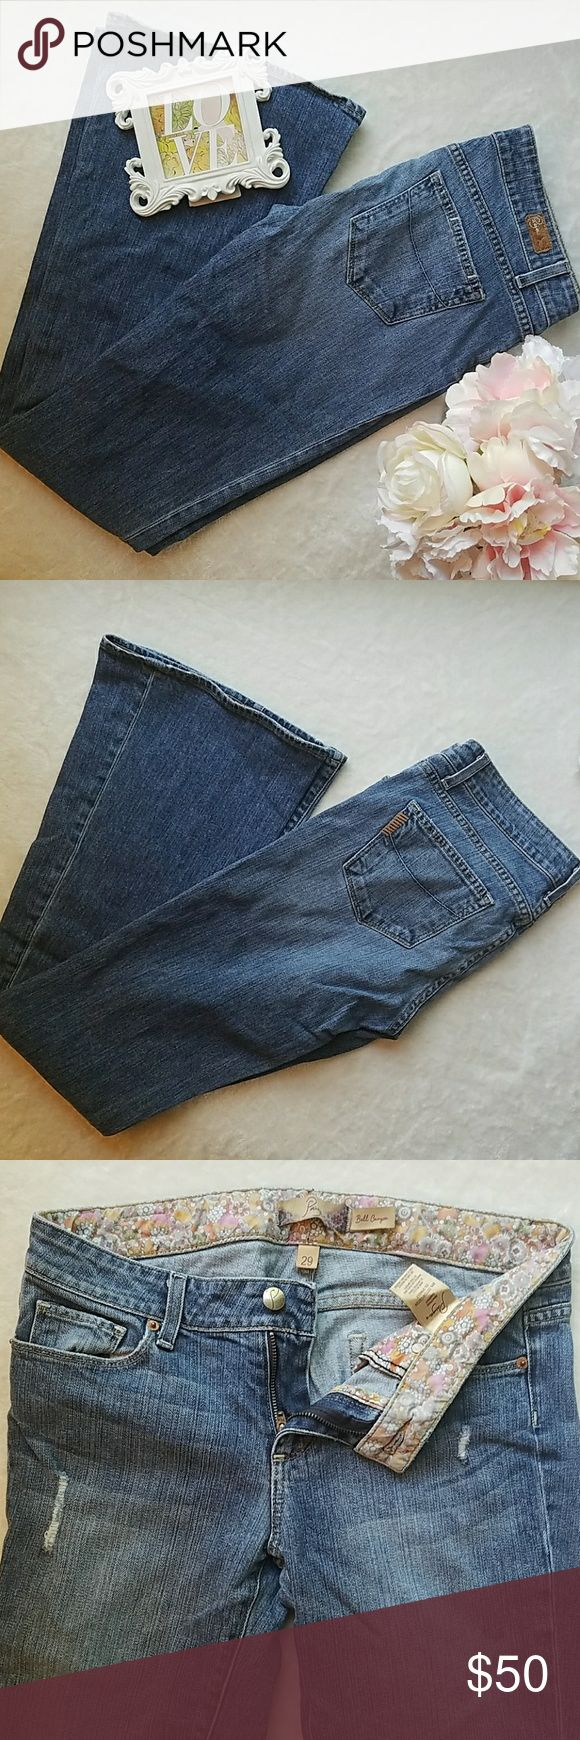 "Paige jeans Bell Canyon bootcut 29 EUC Paige jeans Bell Canyon bootcut 29 EUC 34""inseam no fraying on pant leg hems. No Trades No Low Ball All Reasonable Offers Accepted Bundle For Discount & Save In Shipping. Paige Jeans Jeans Boot Cut"